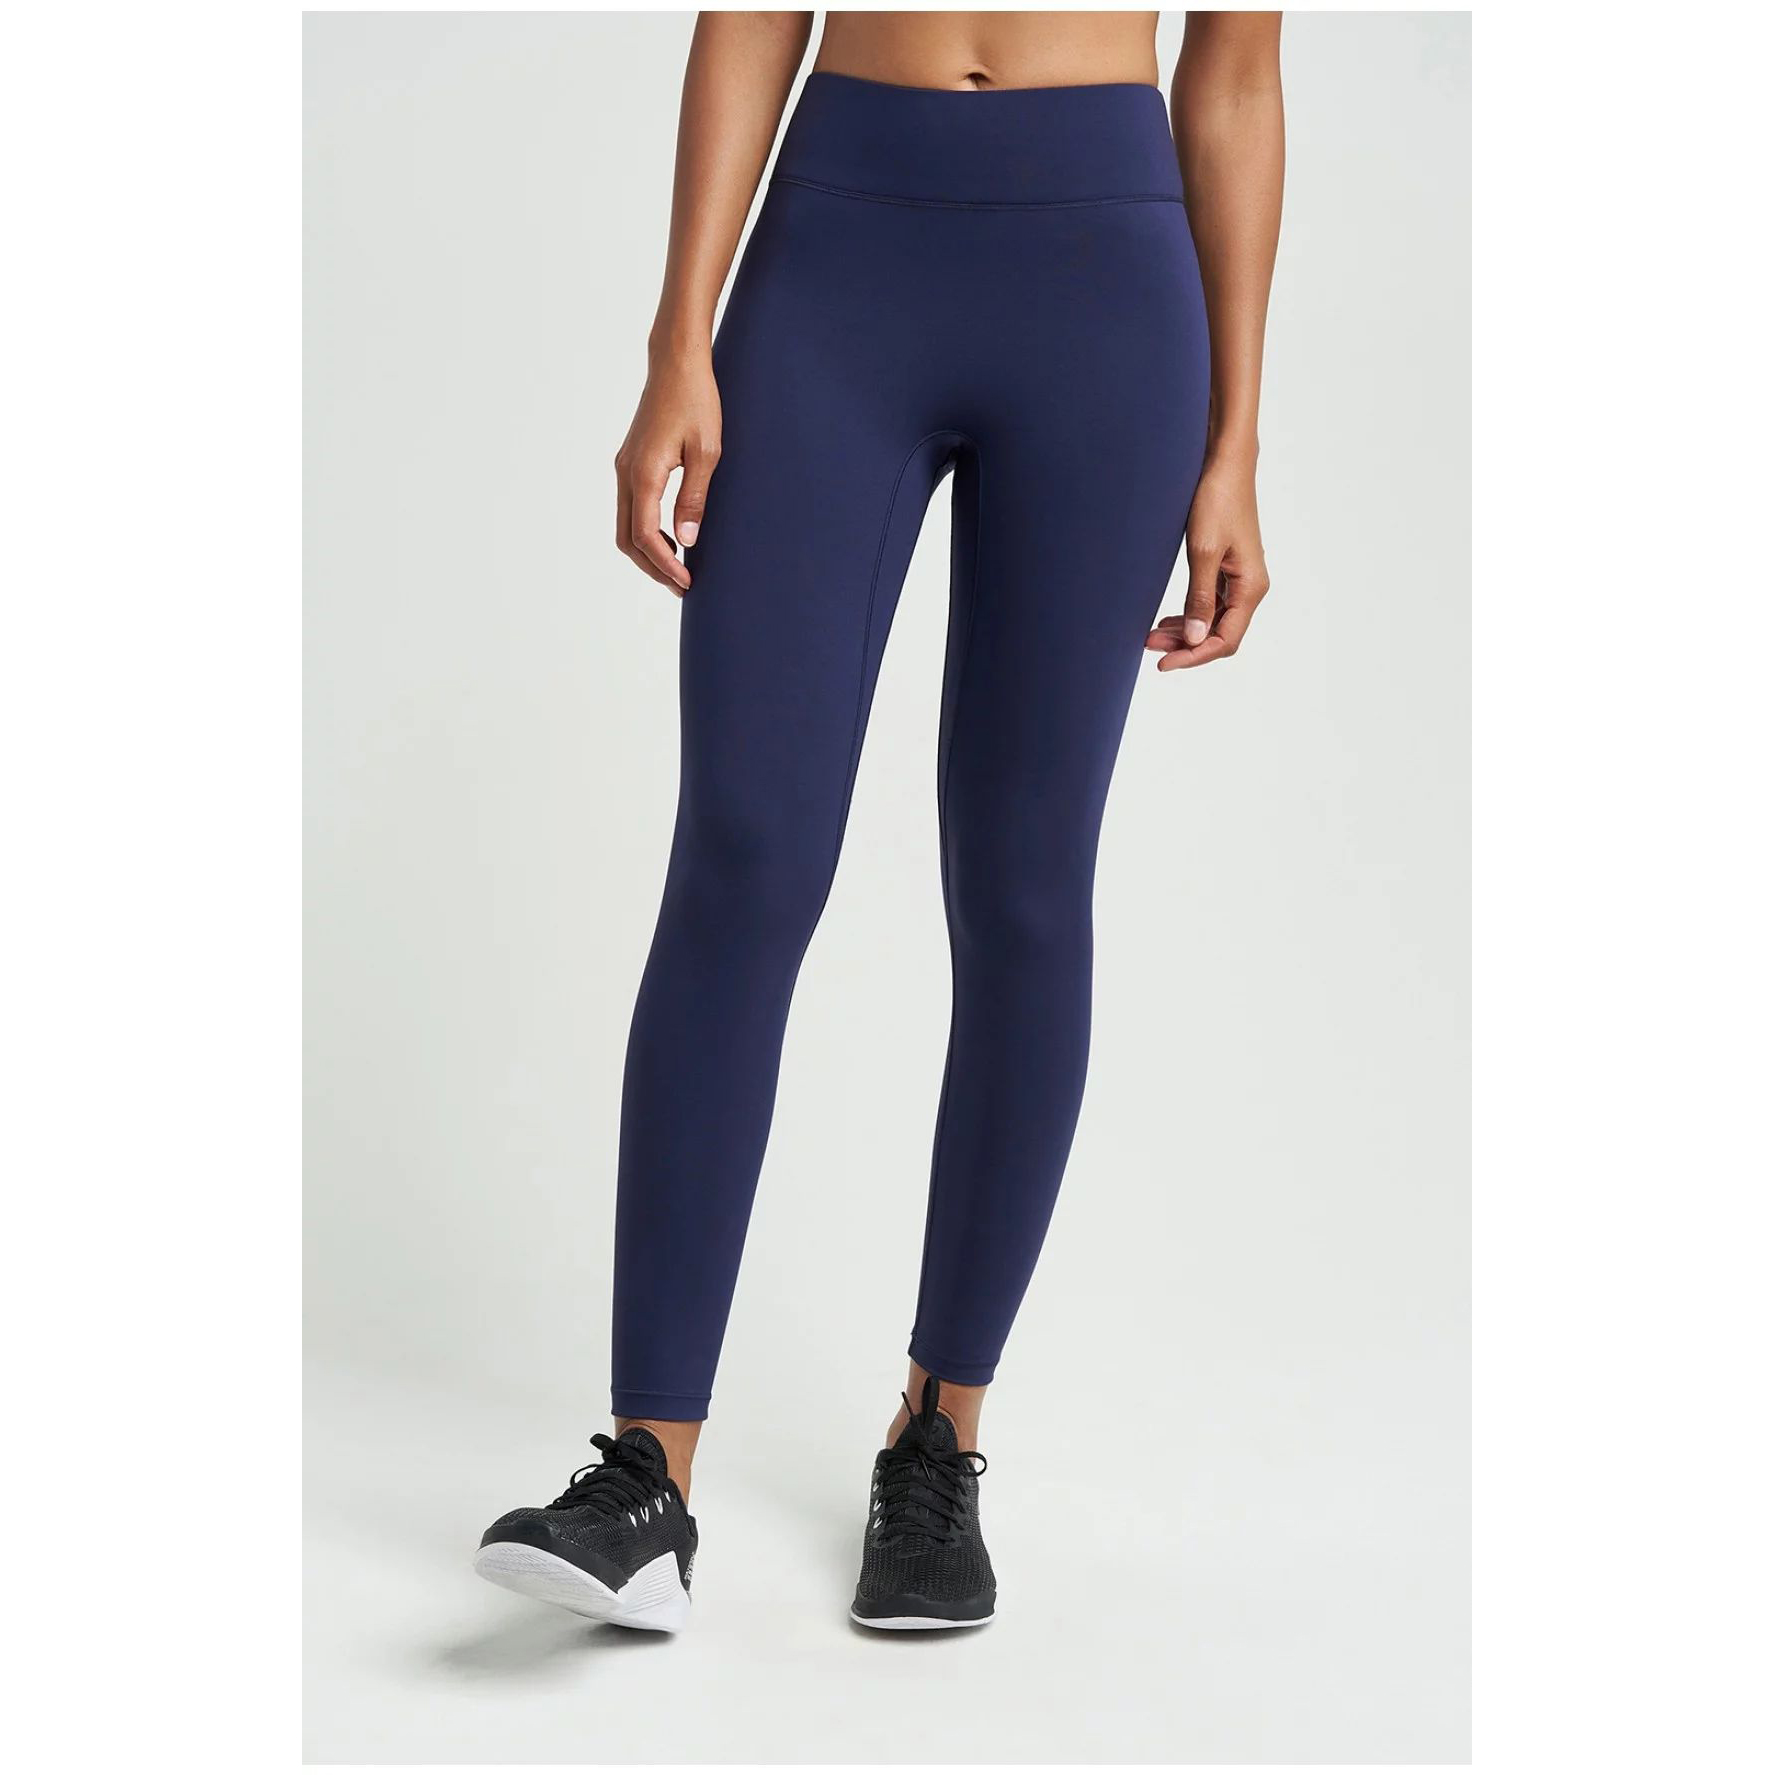 Bandier All Access Center Stage Legging